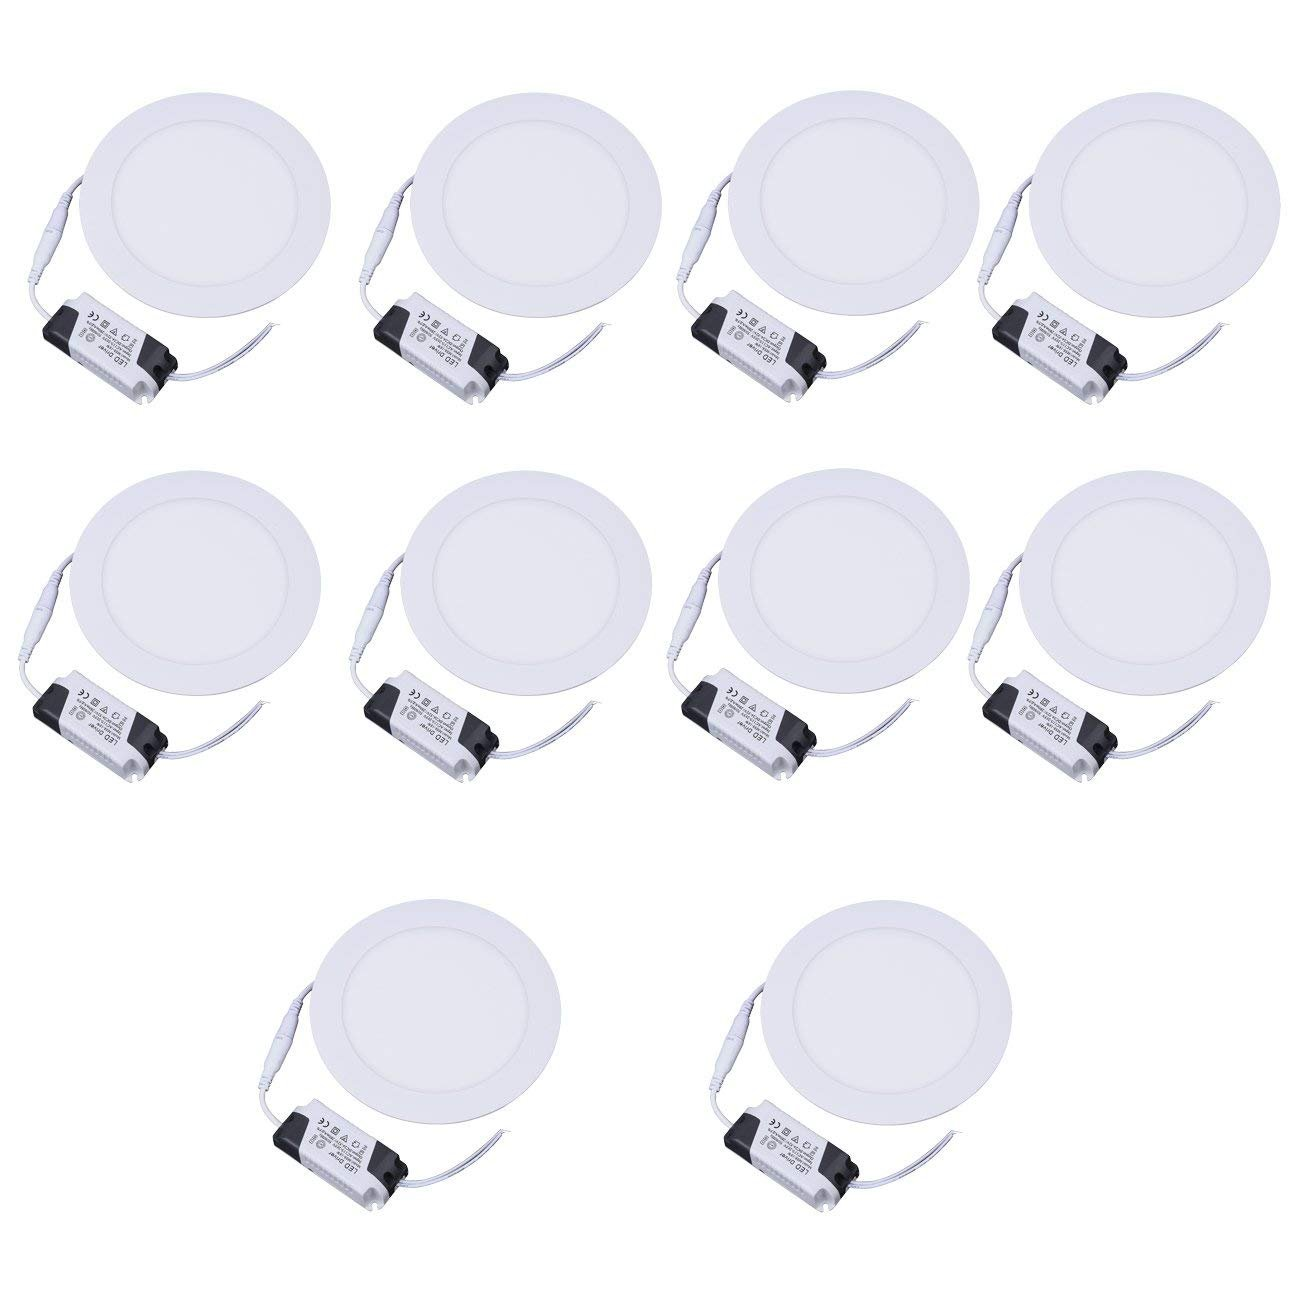 Ridgeyard 10x 12W Ultra-Thin Round LED Panel Light 6000-6500K, 880 Lumens LED Recessed Flat Panel Downlight Ceiling Lights, 10 Pack